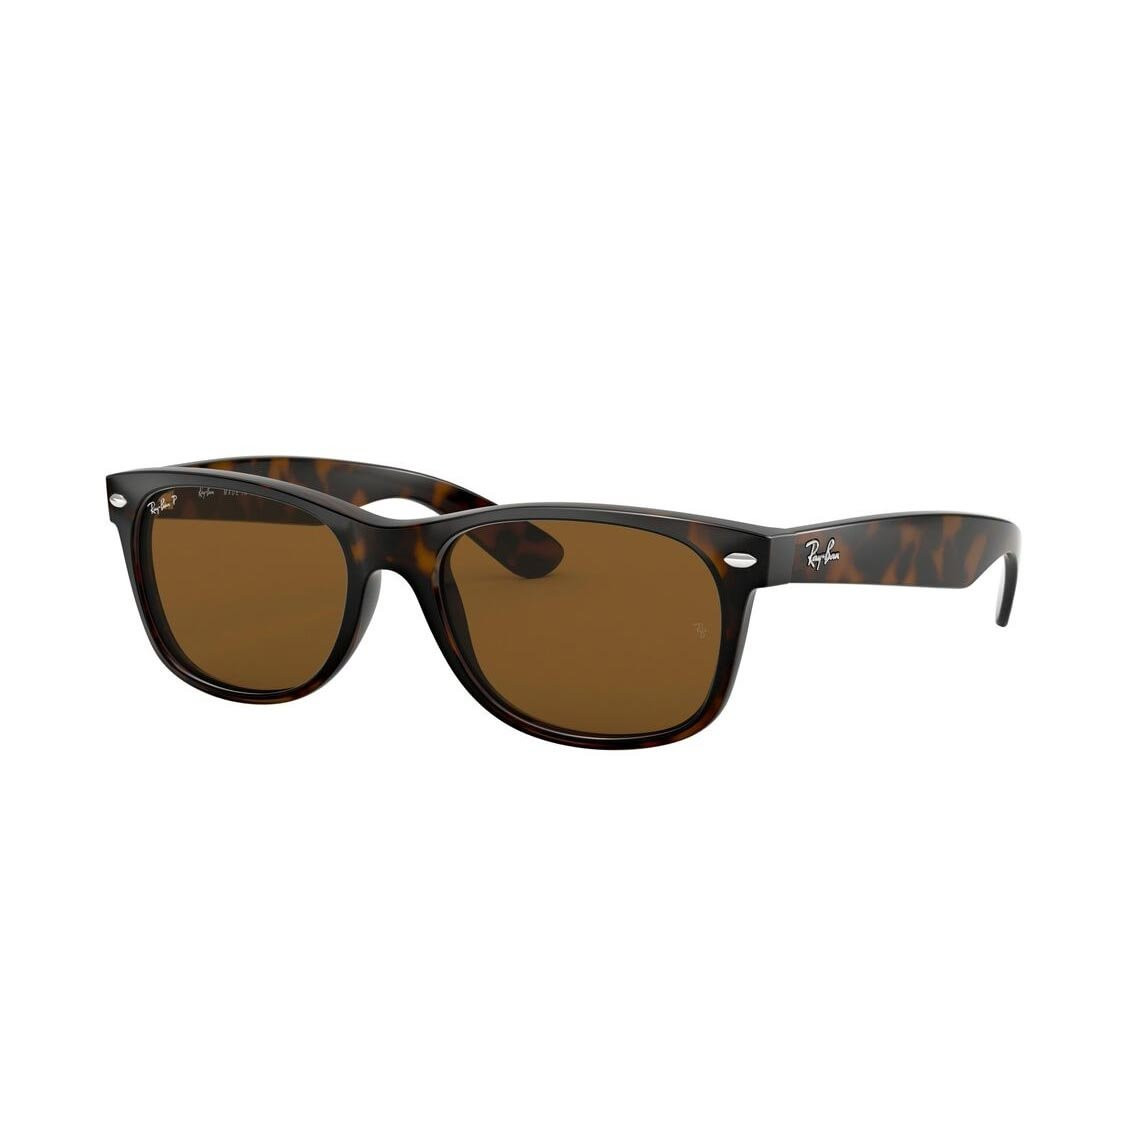 Ray-Ban New Wayfarer RB2132 902/57 55